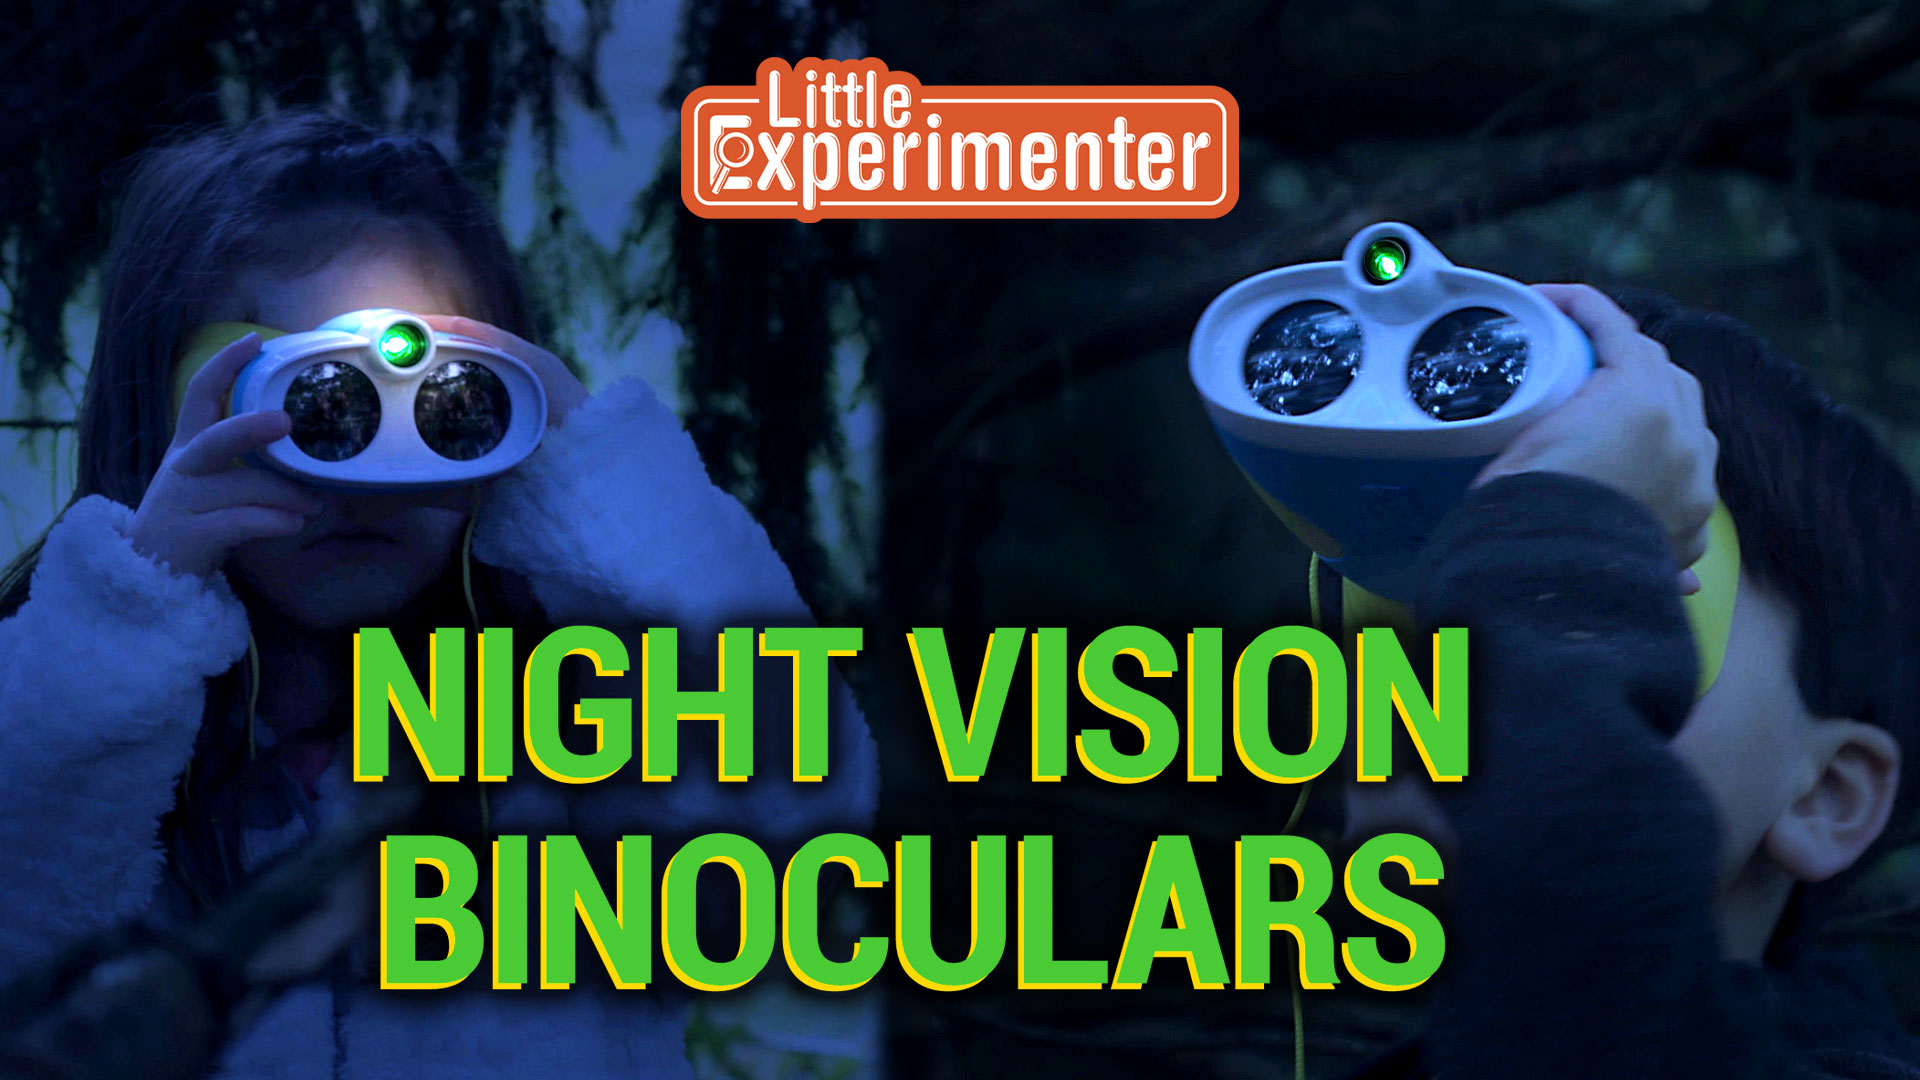 Littler Experimenter Night Vision Binoculars